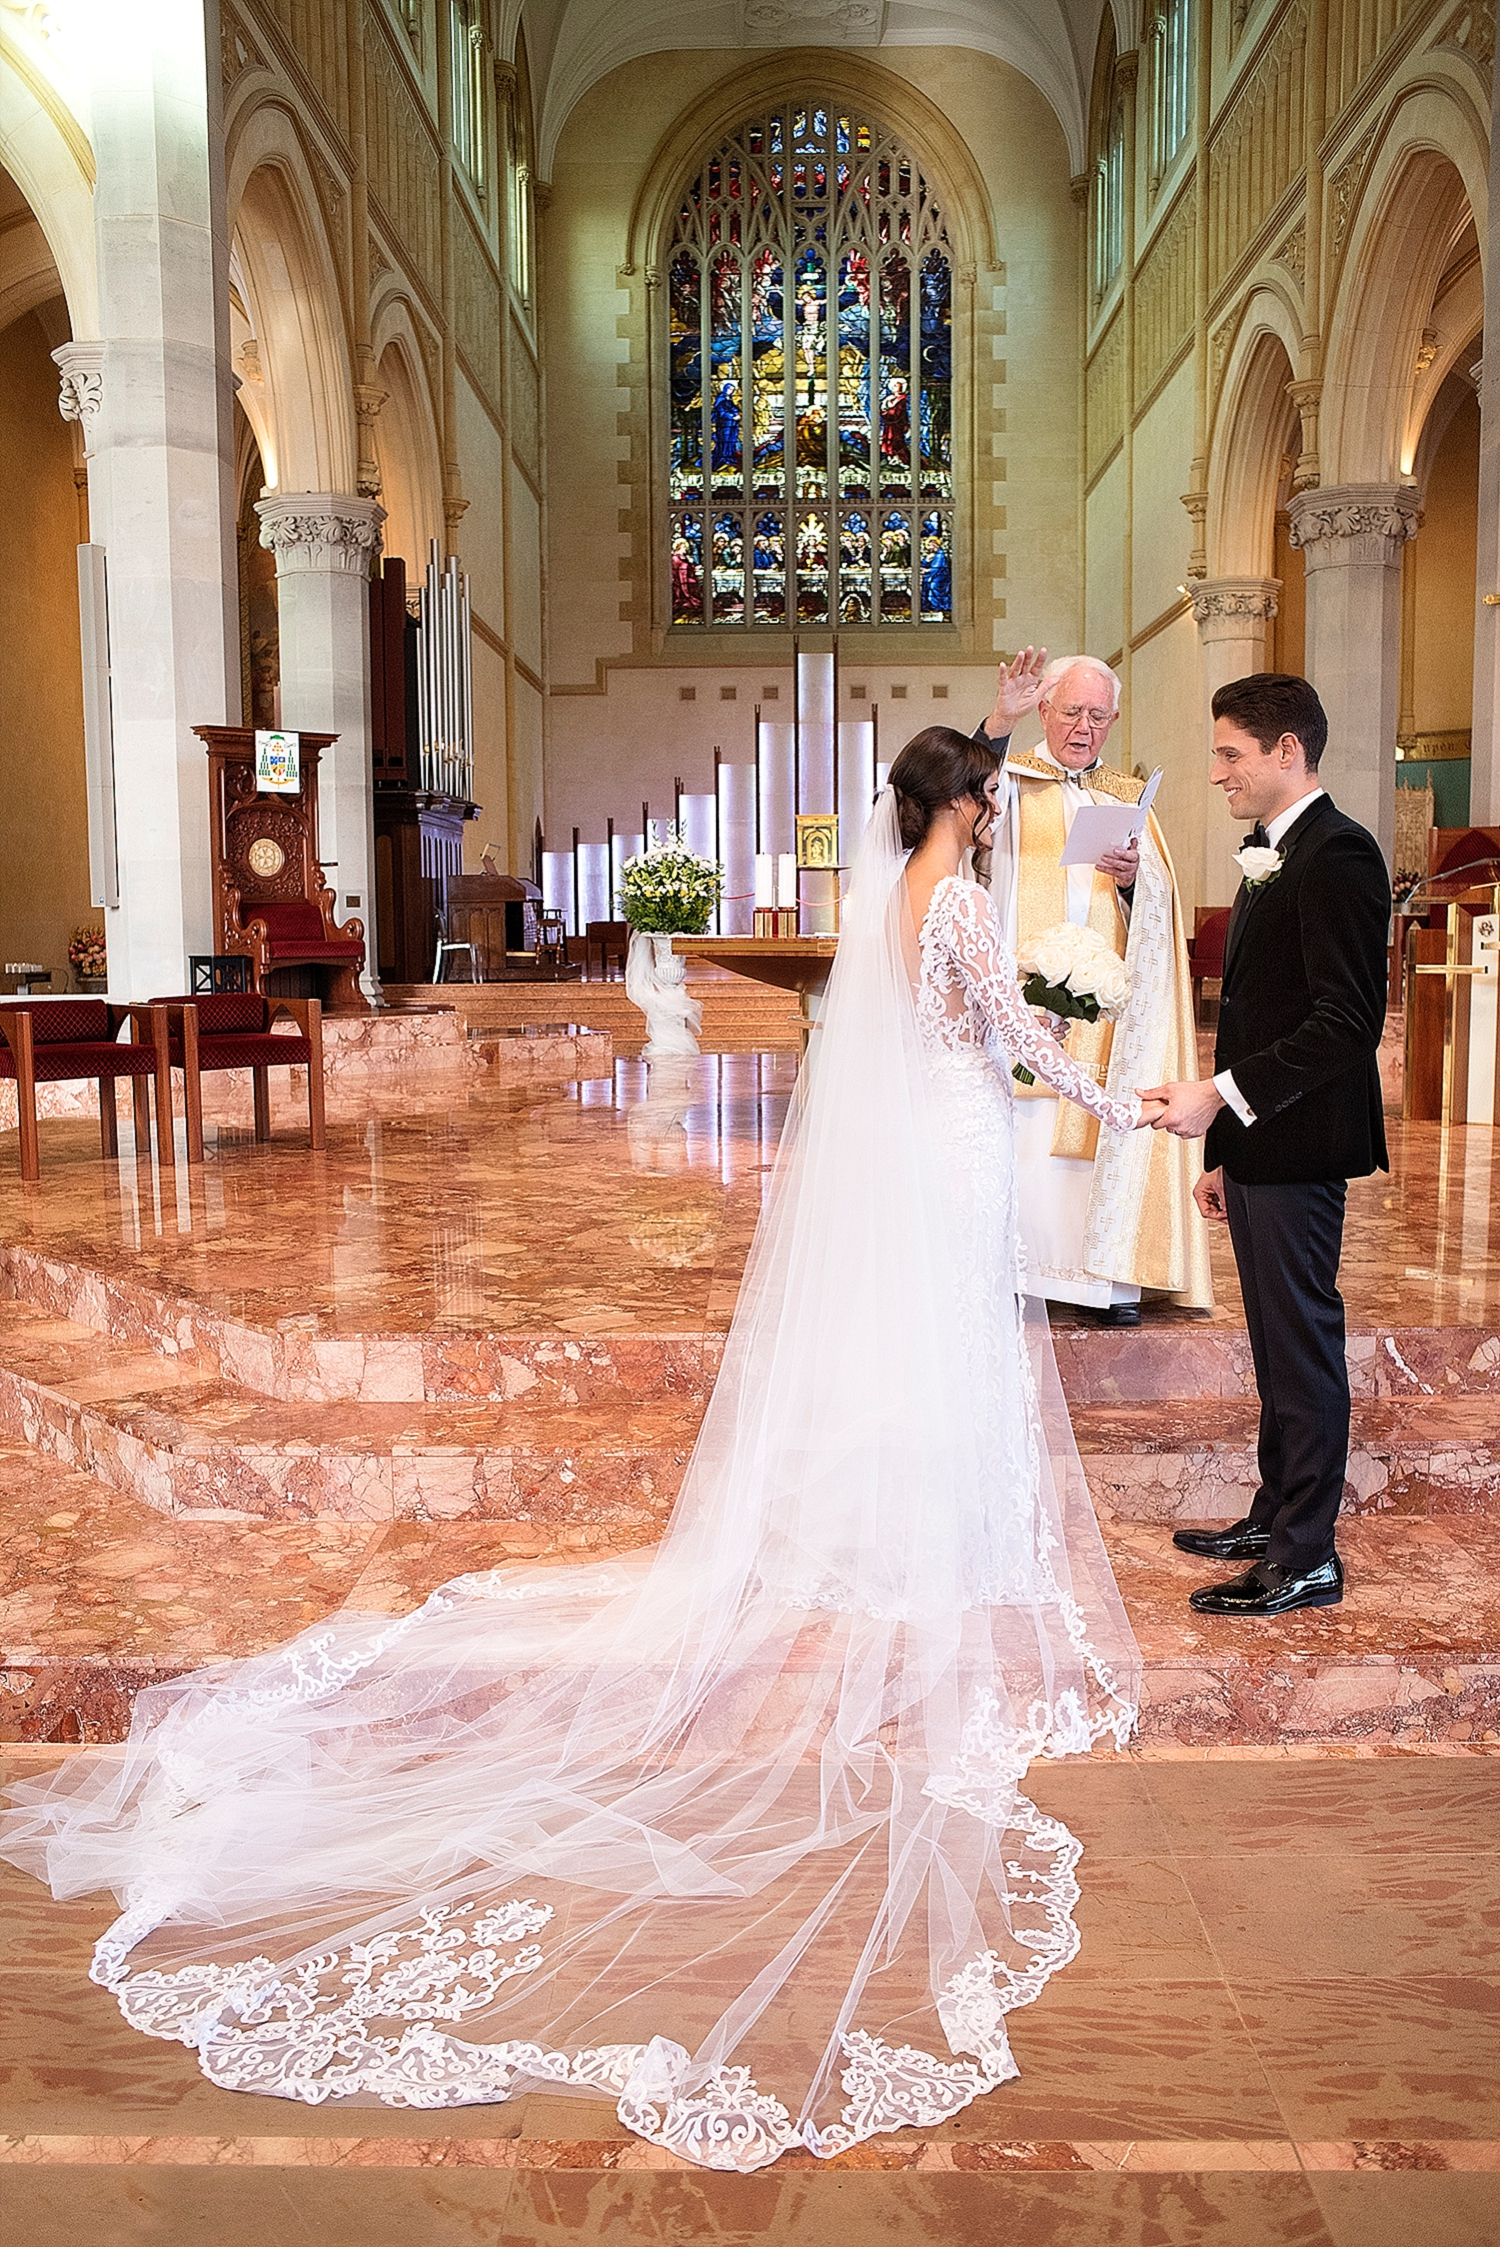 2a5f82aaabb 033 st marys cathedral lace wedding gown aelkemi state reception centre  wedding perth.JPG